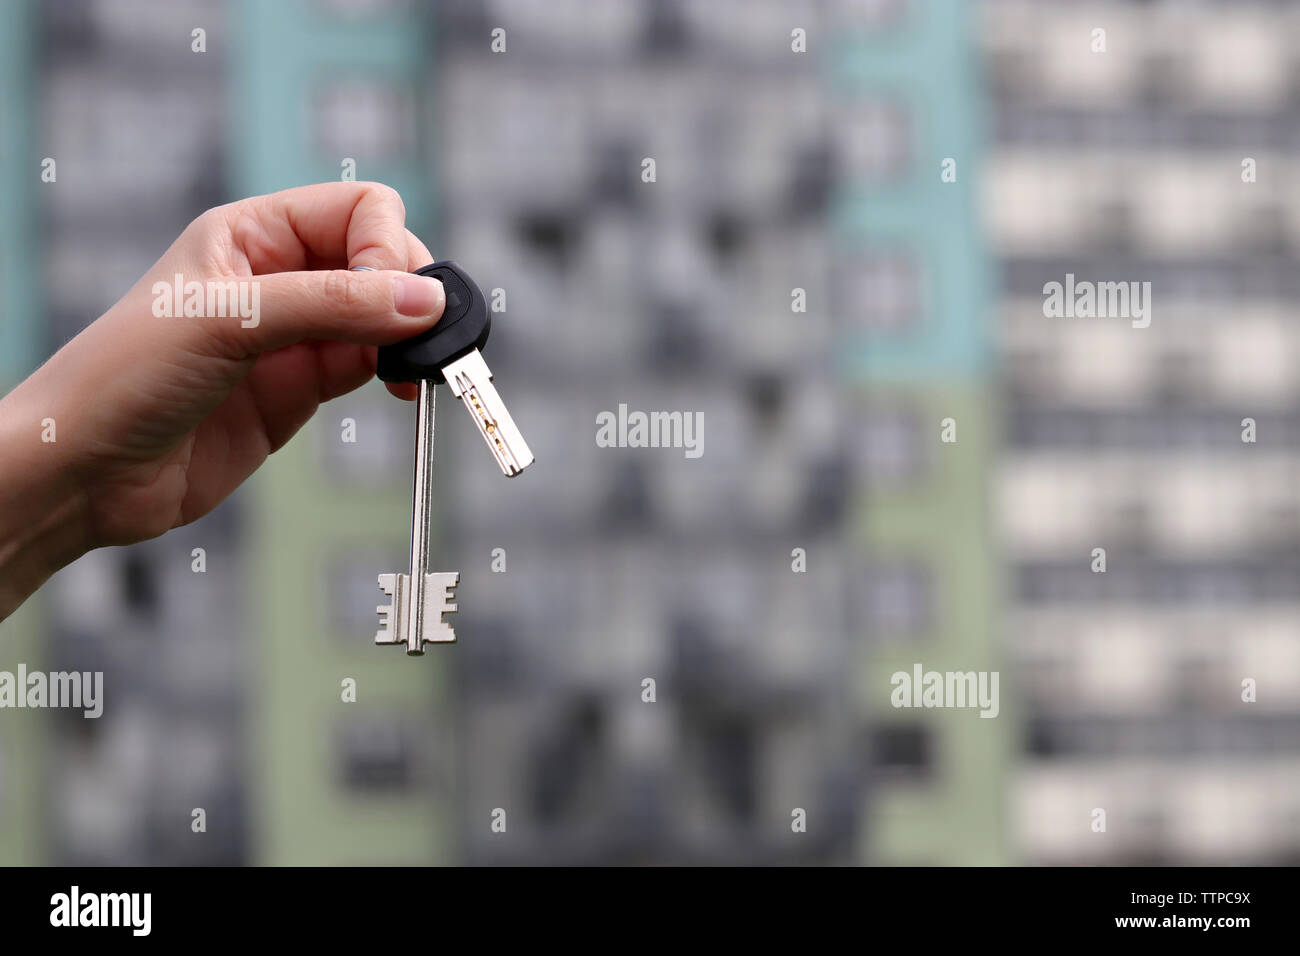 Real estate agent holding house keys on background of new residential building. Concept of house and apartment purchase, rental property - Stock Image